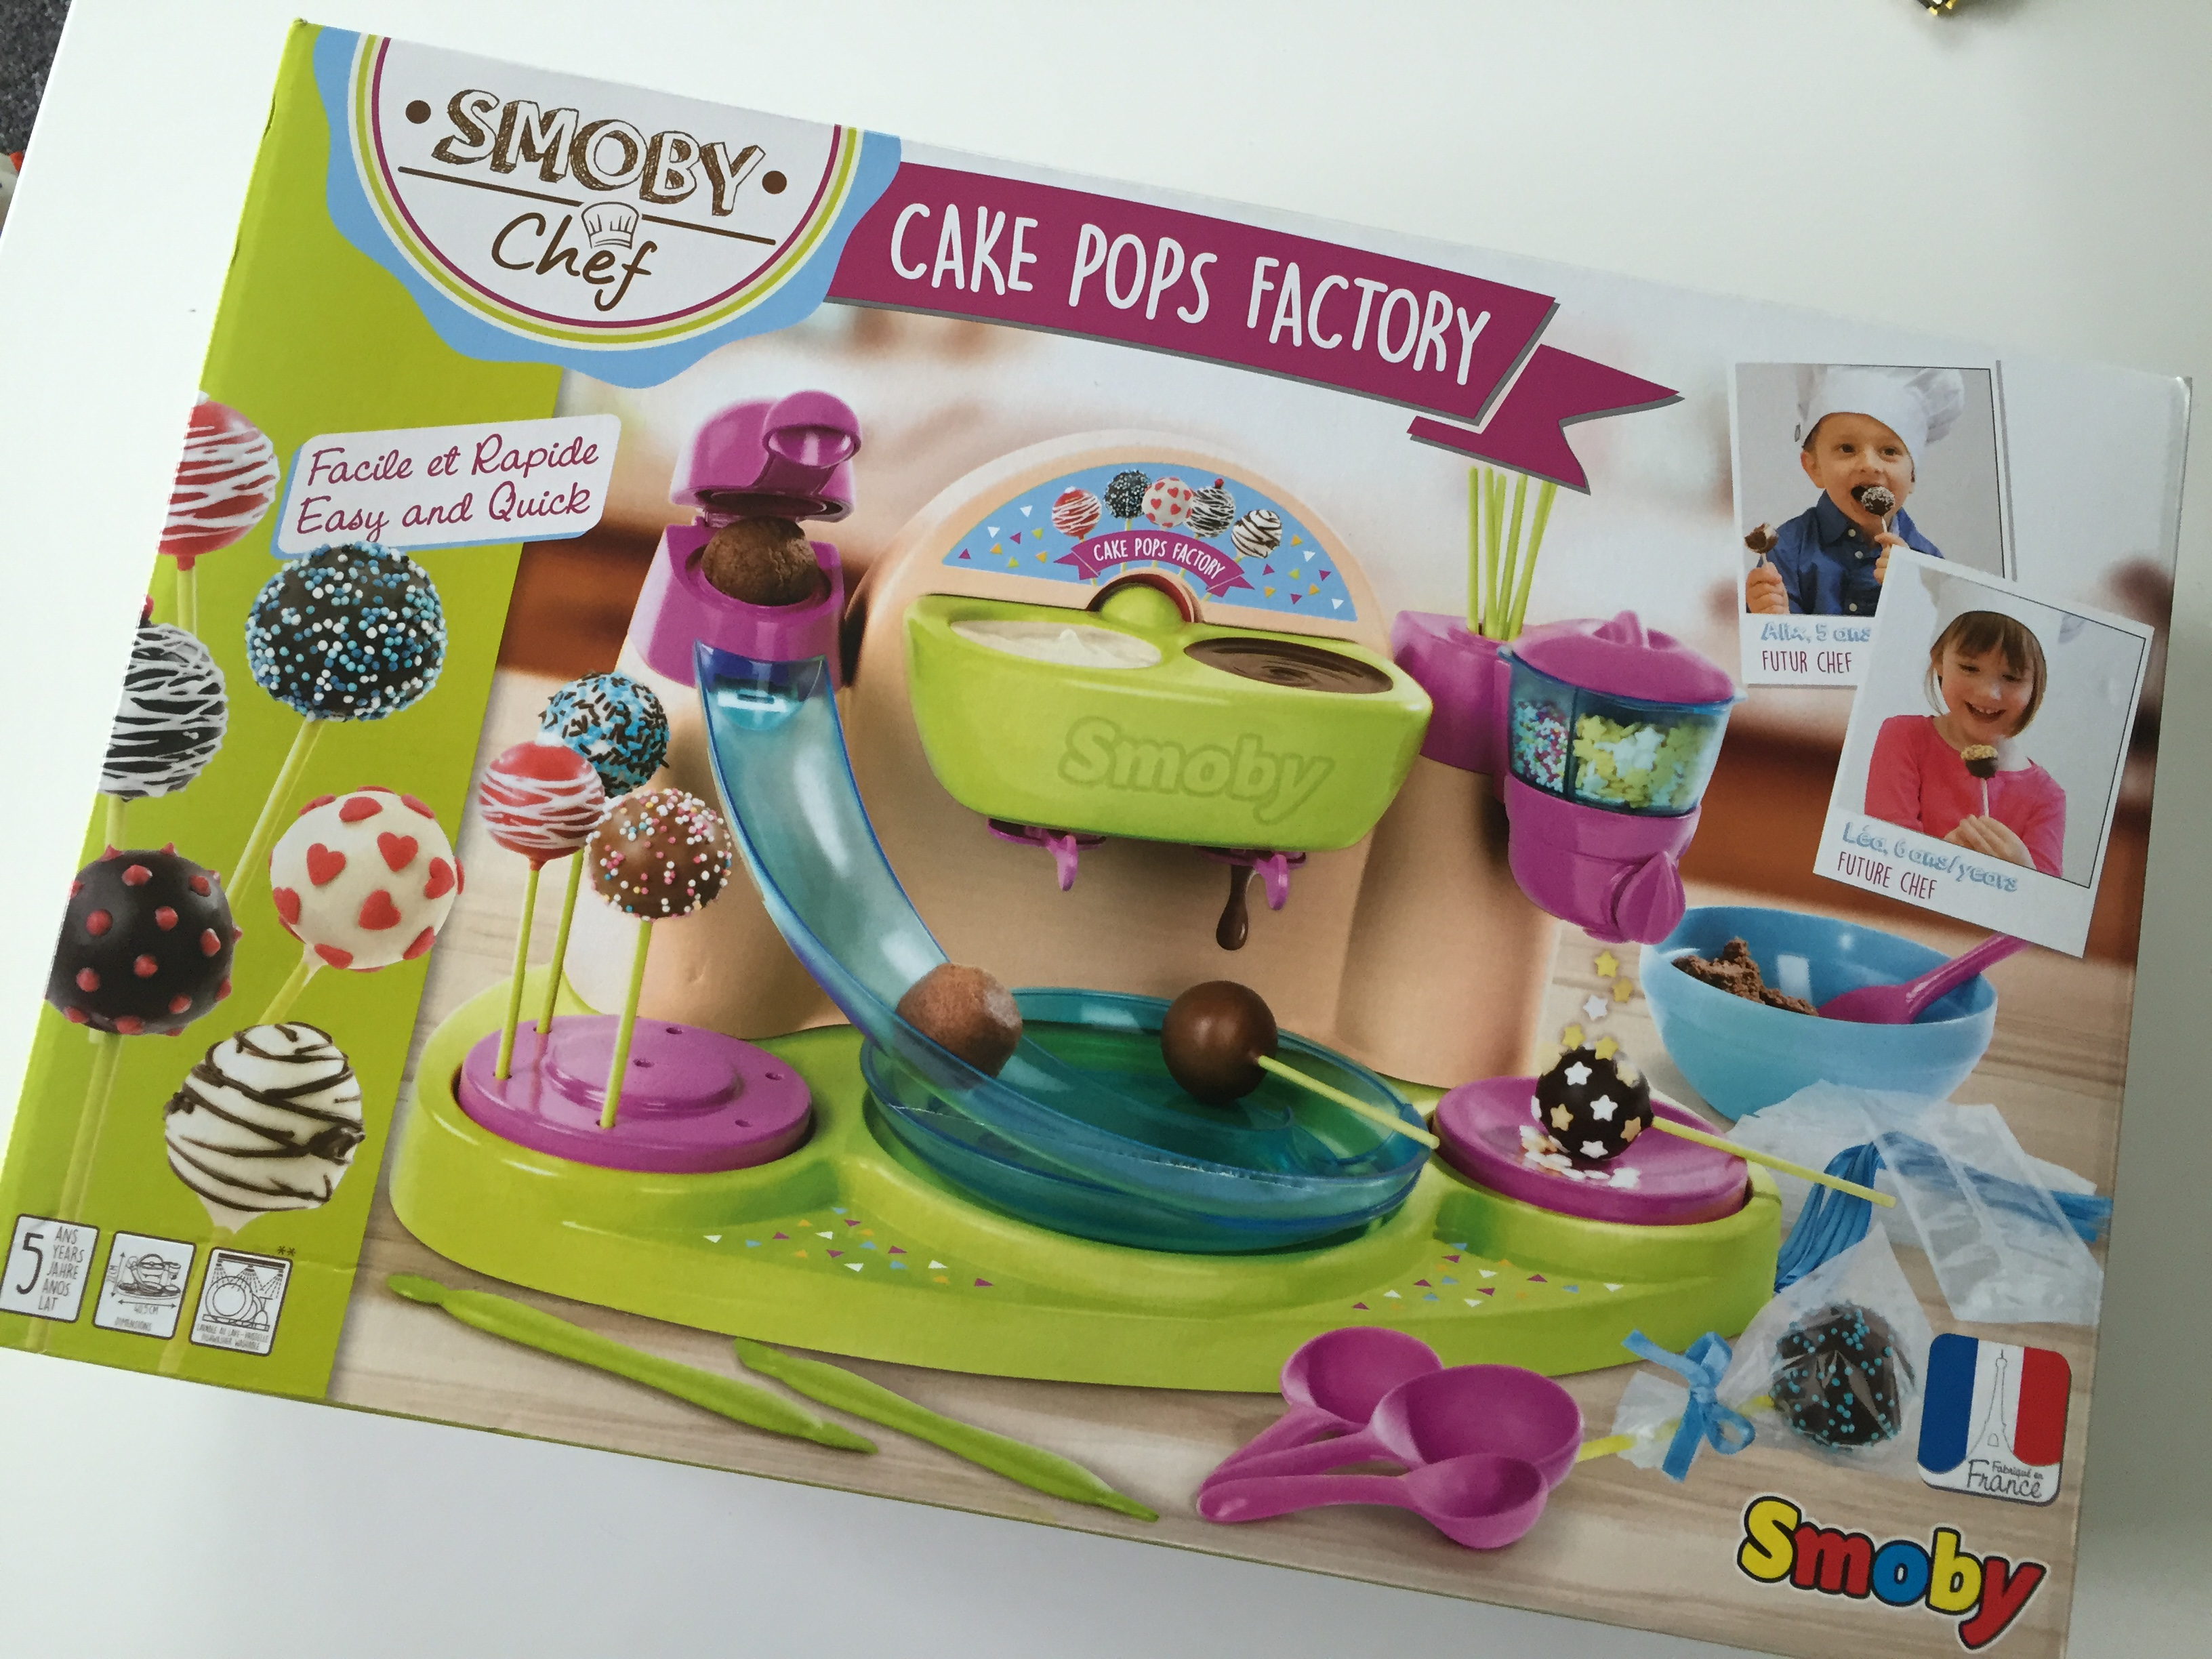 Smoby Chef Pop Cake